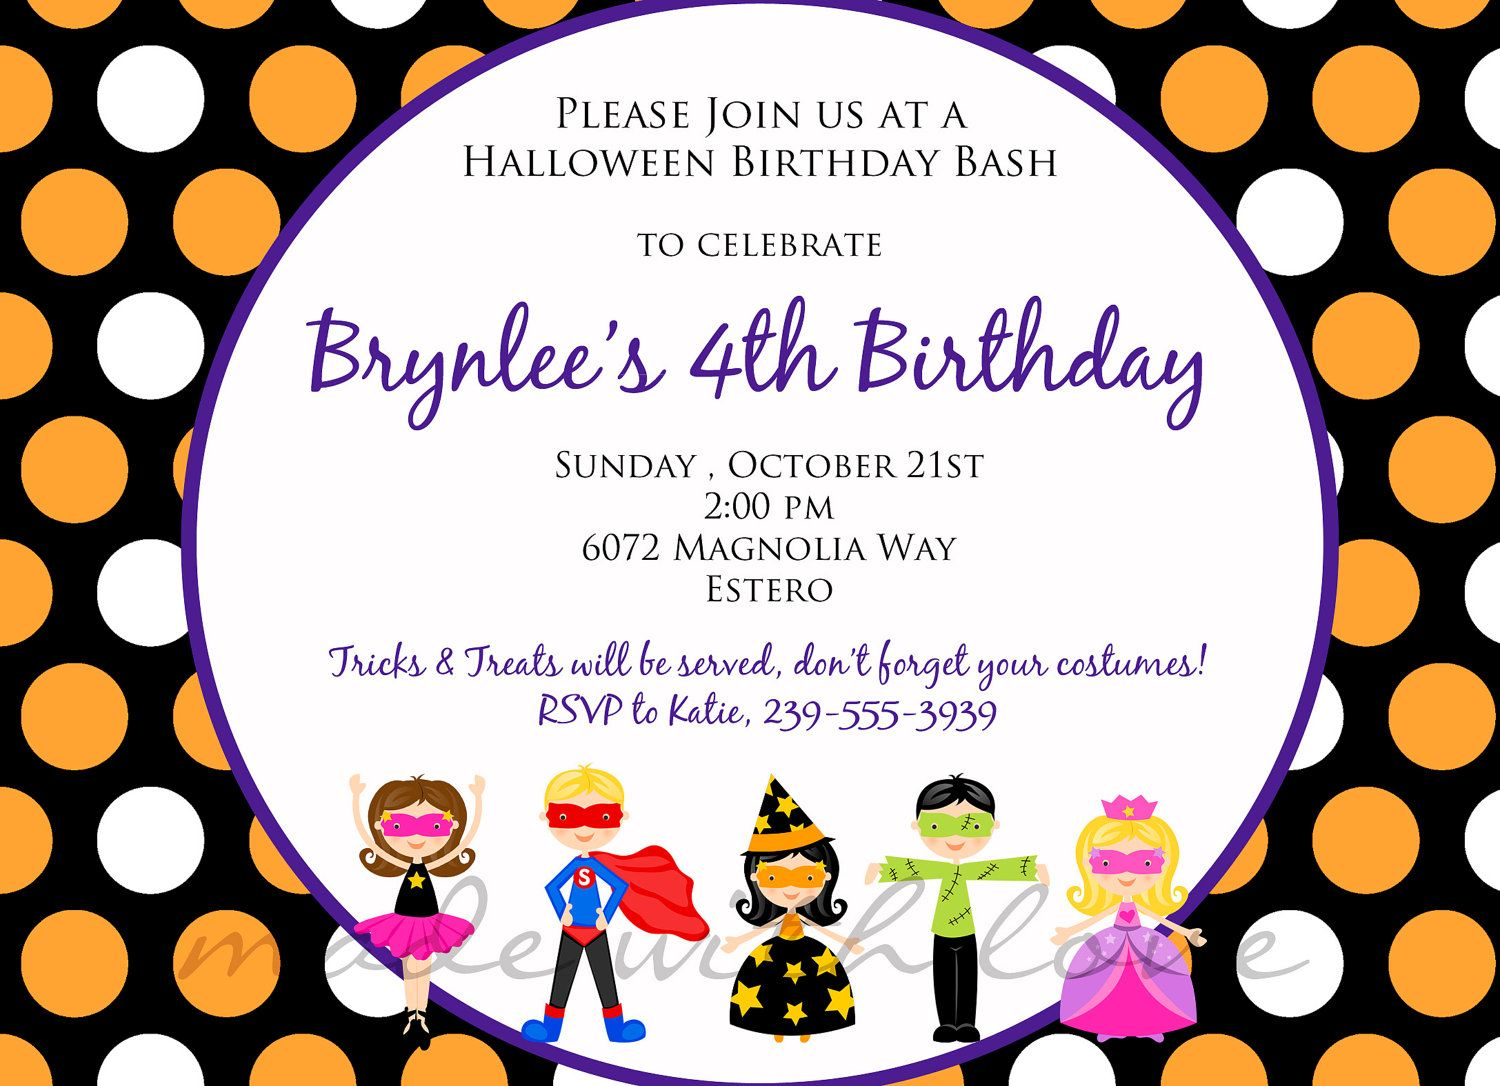 Princess Birthday Party Invitation – Sample Kids Birthday Invitation